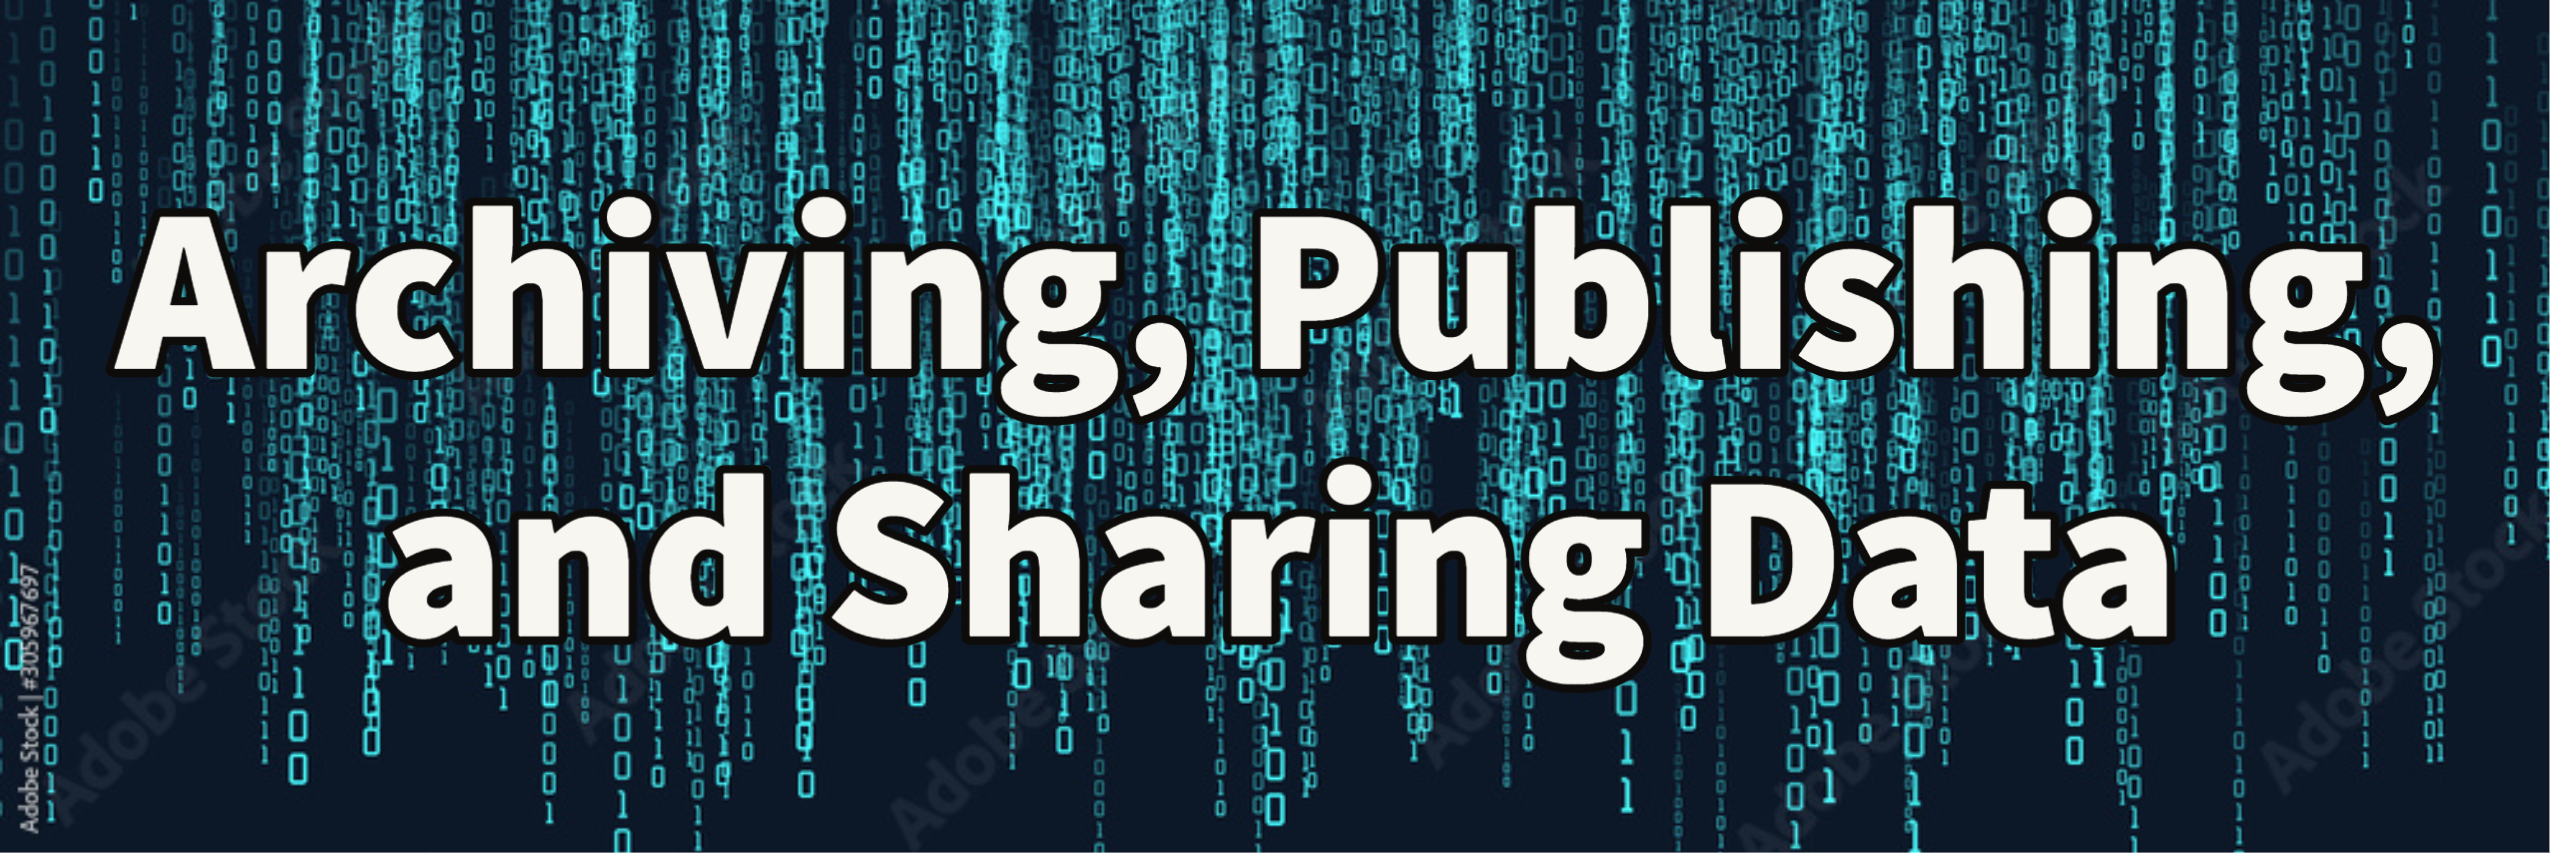 archiving, publishing, and sharing data